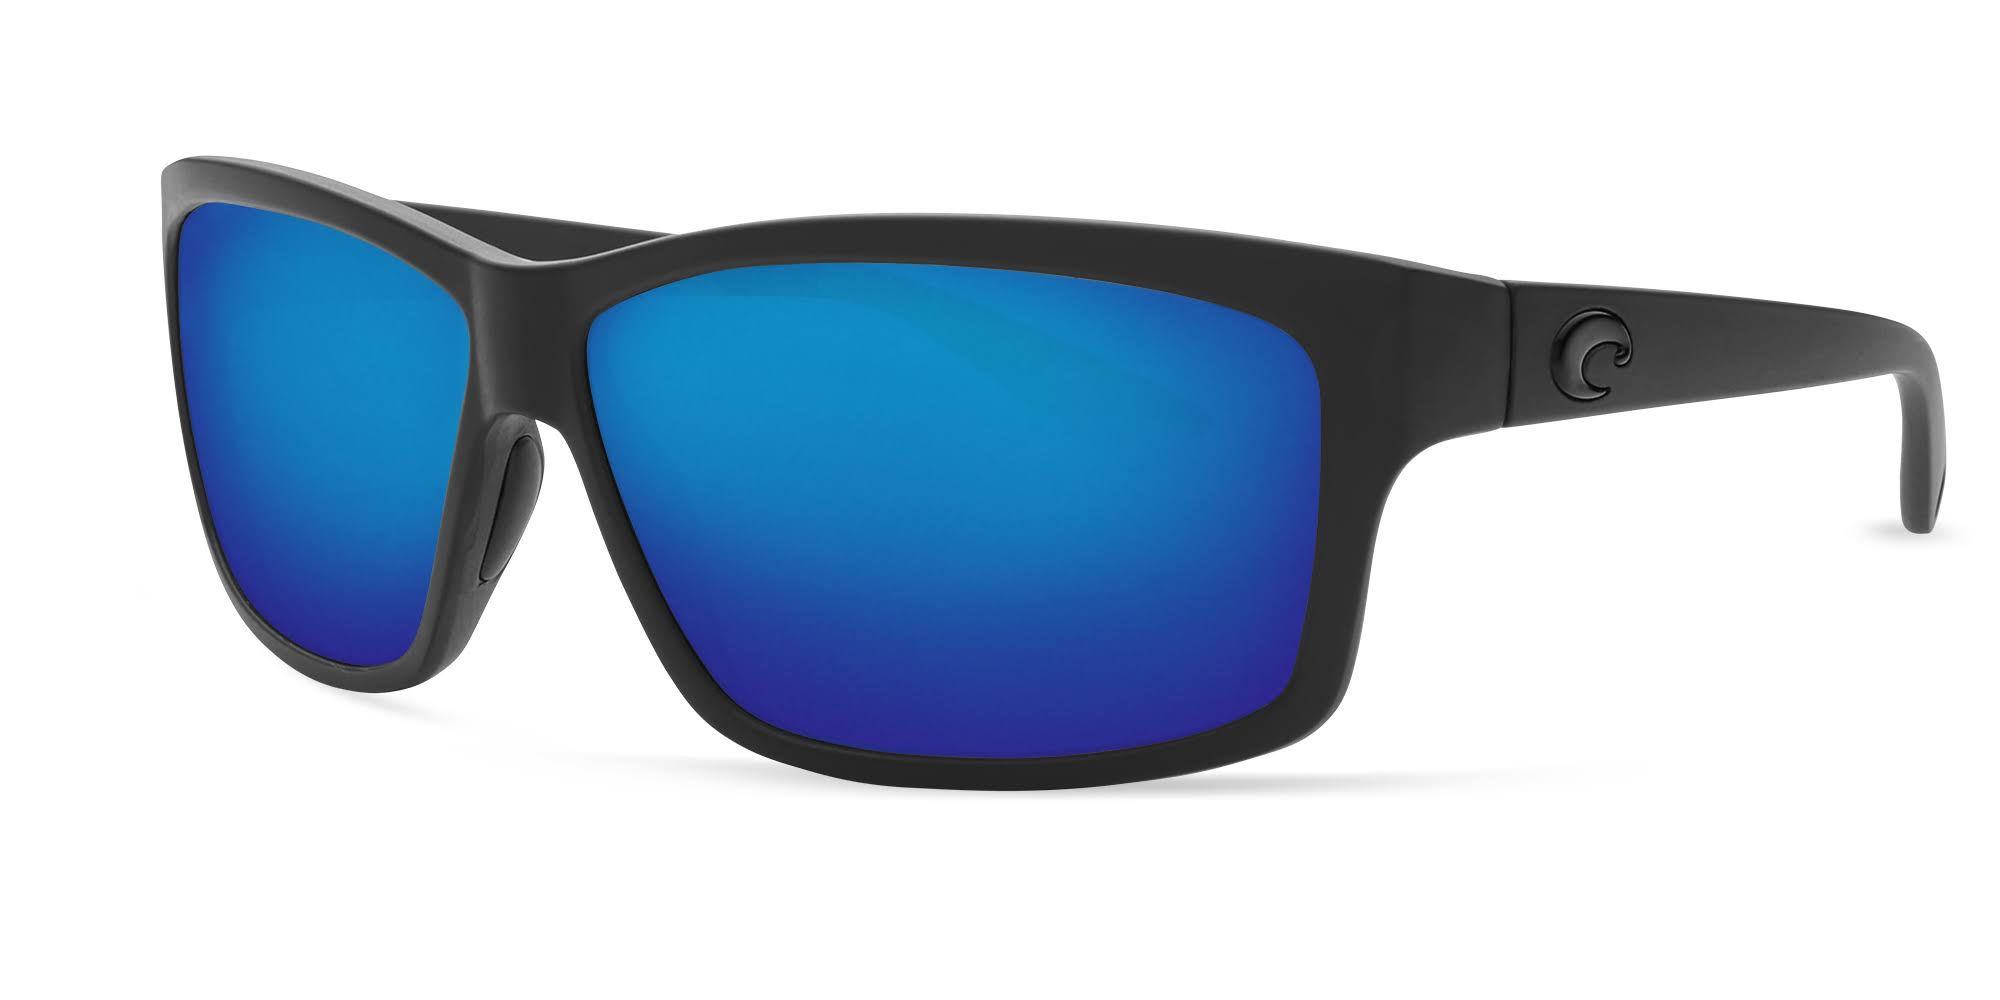 Costa Del Mar Sunglasses - Polarized Cut Blackout and Blue Mirror, 580g